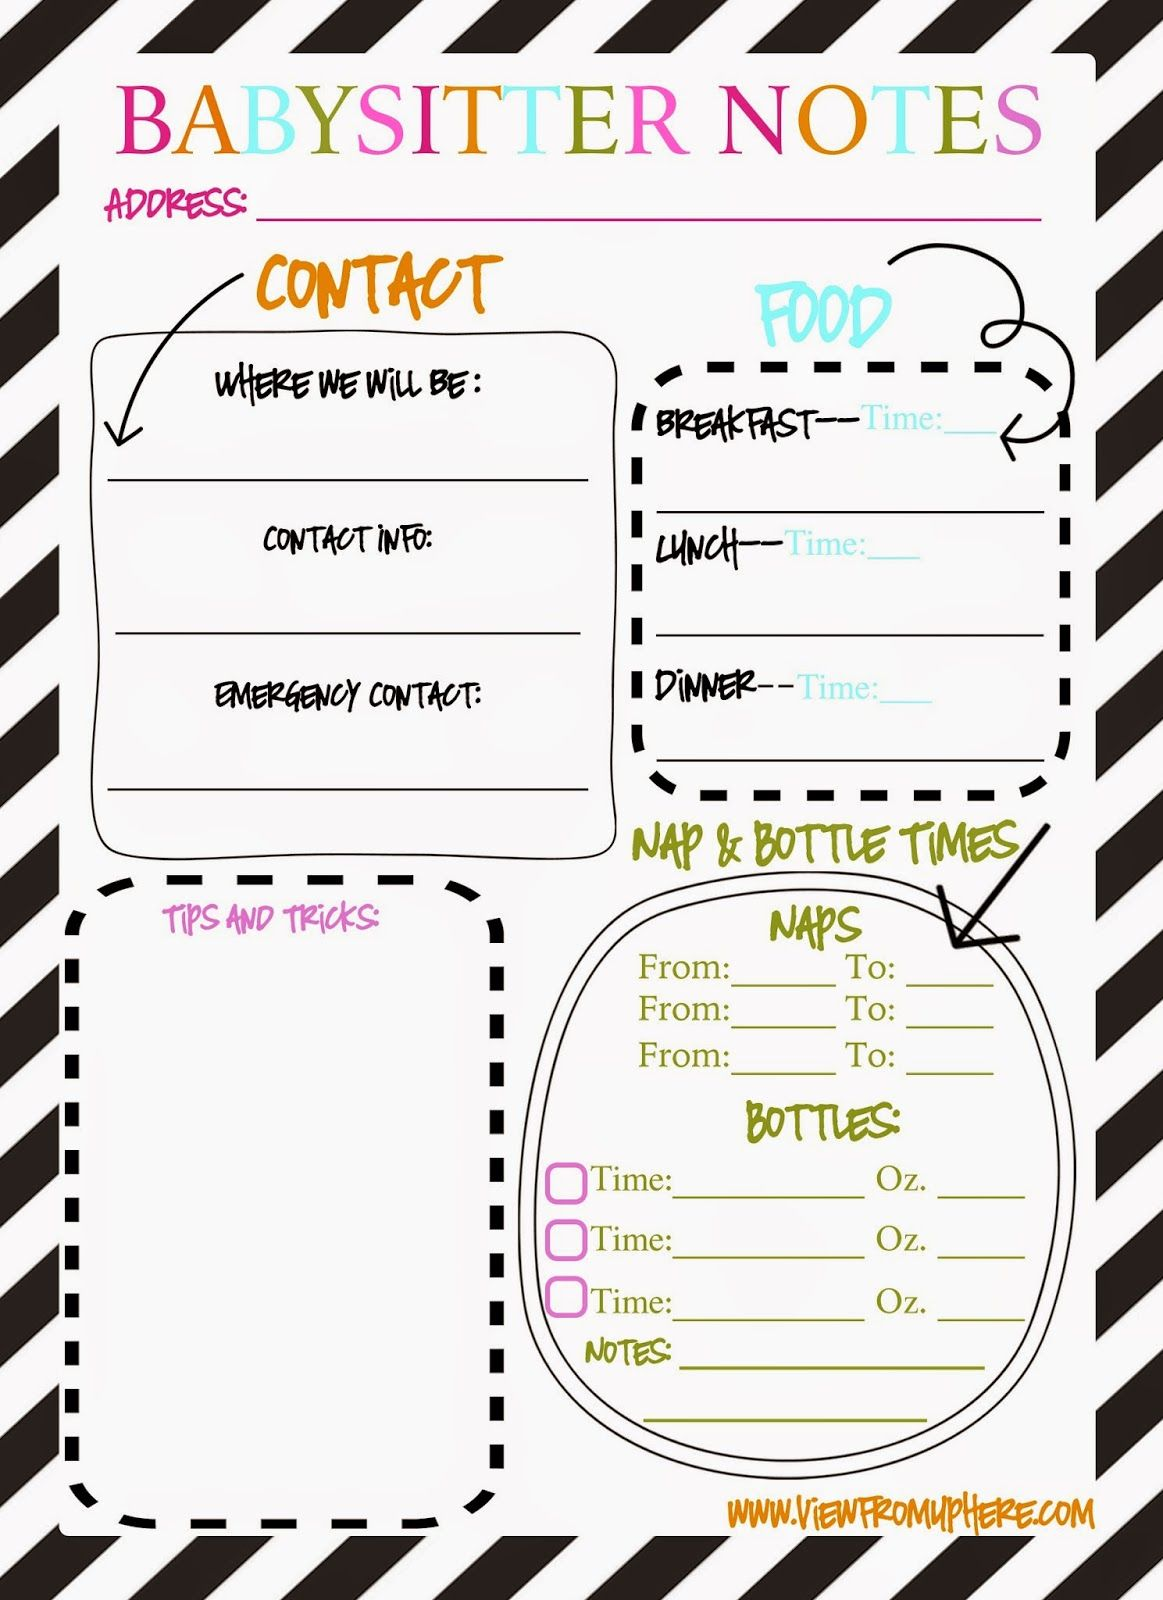 Babysitter Notes Printable